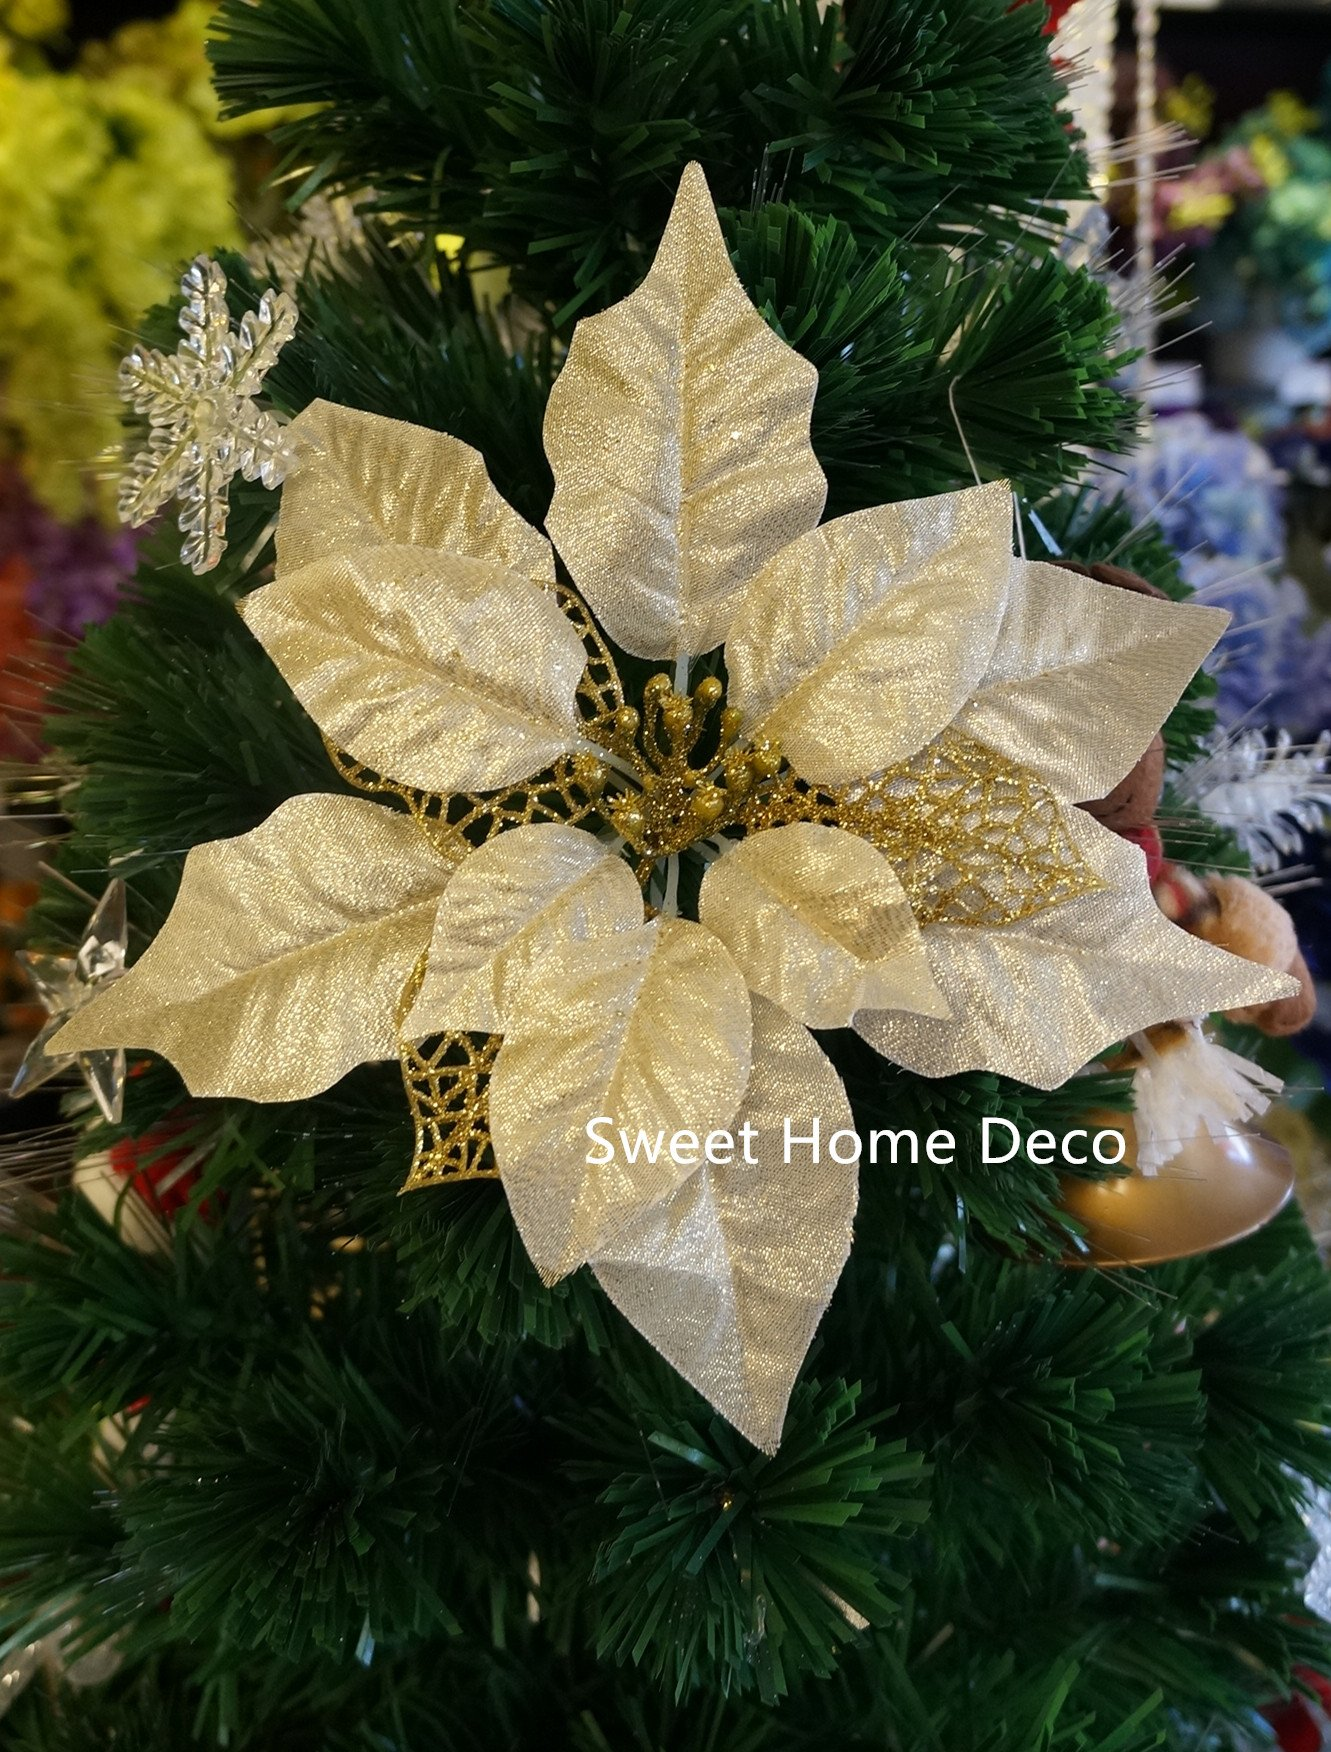 Sweet-Home-Deco-9W-Silk-Shinning-Sprakled-Poinsettia-Artificial-Flower-Heads-Set-of-5-Christmas-Decorations